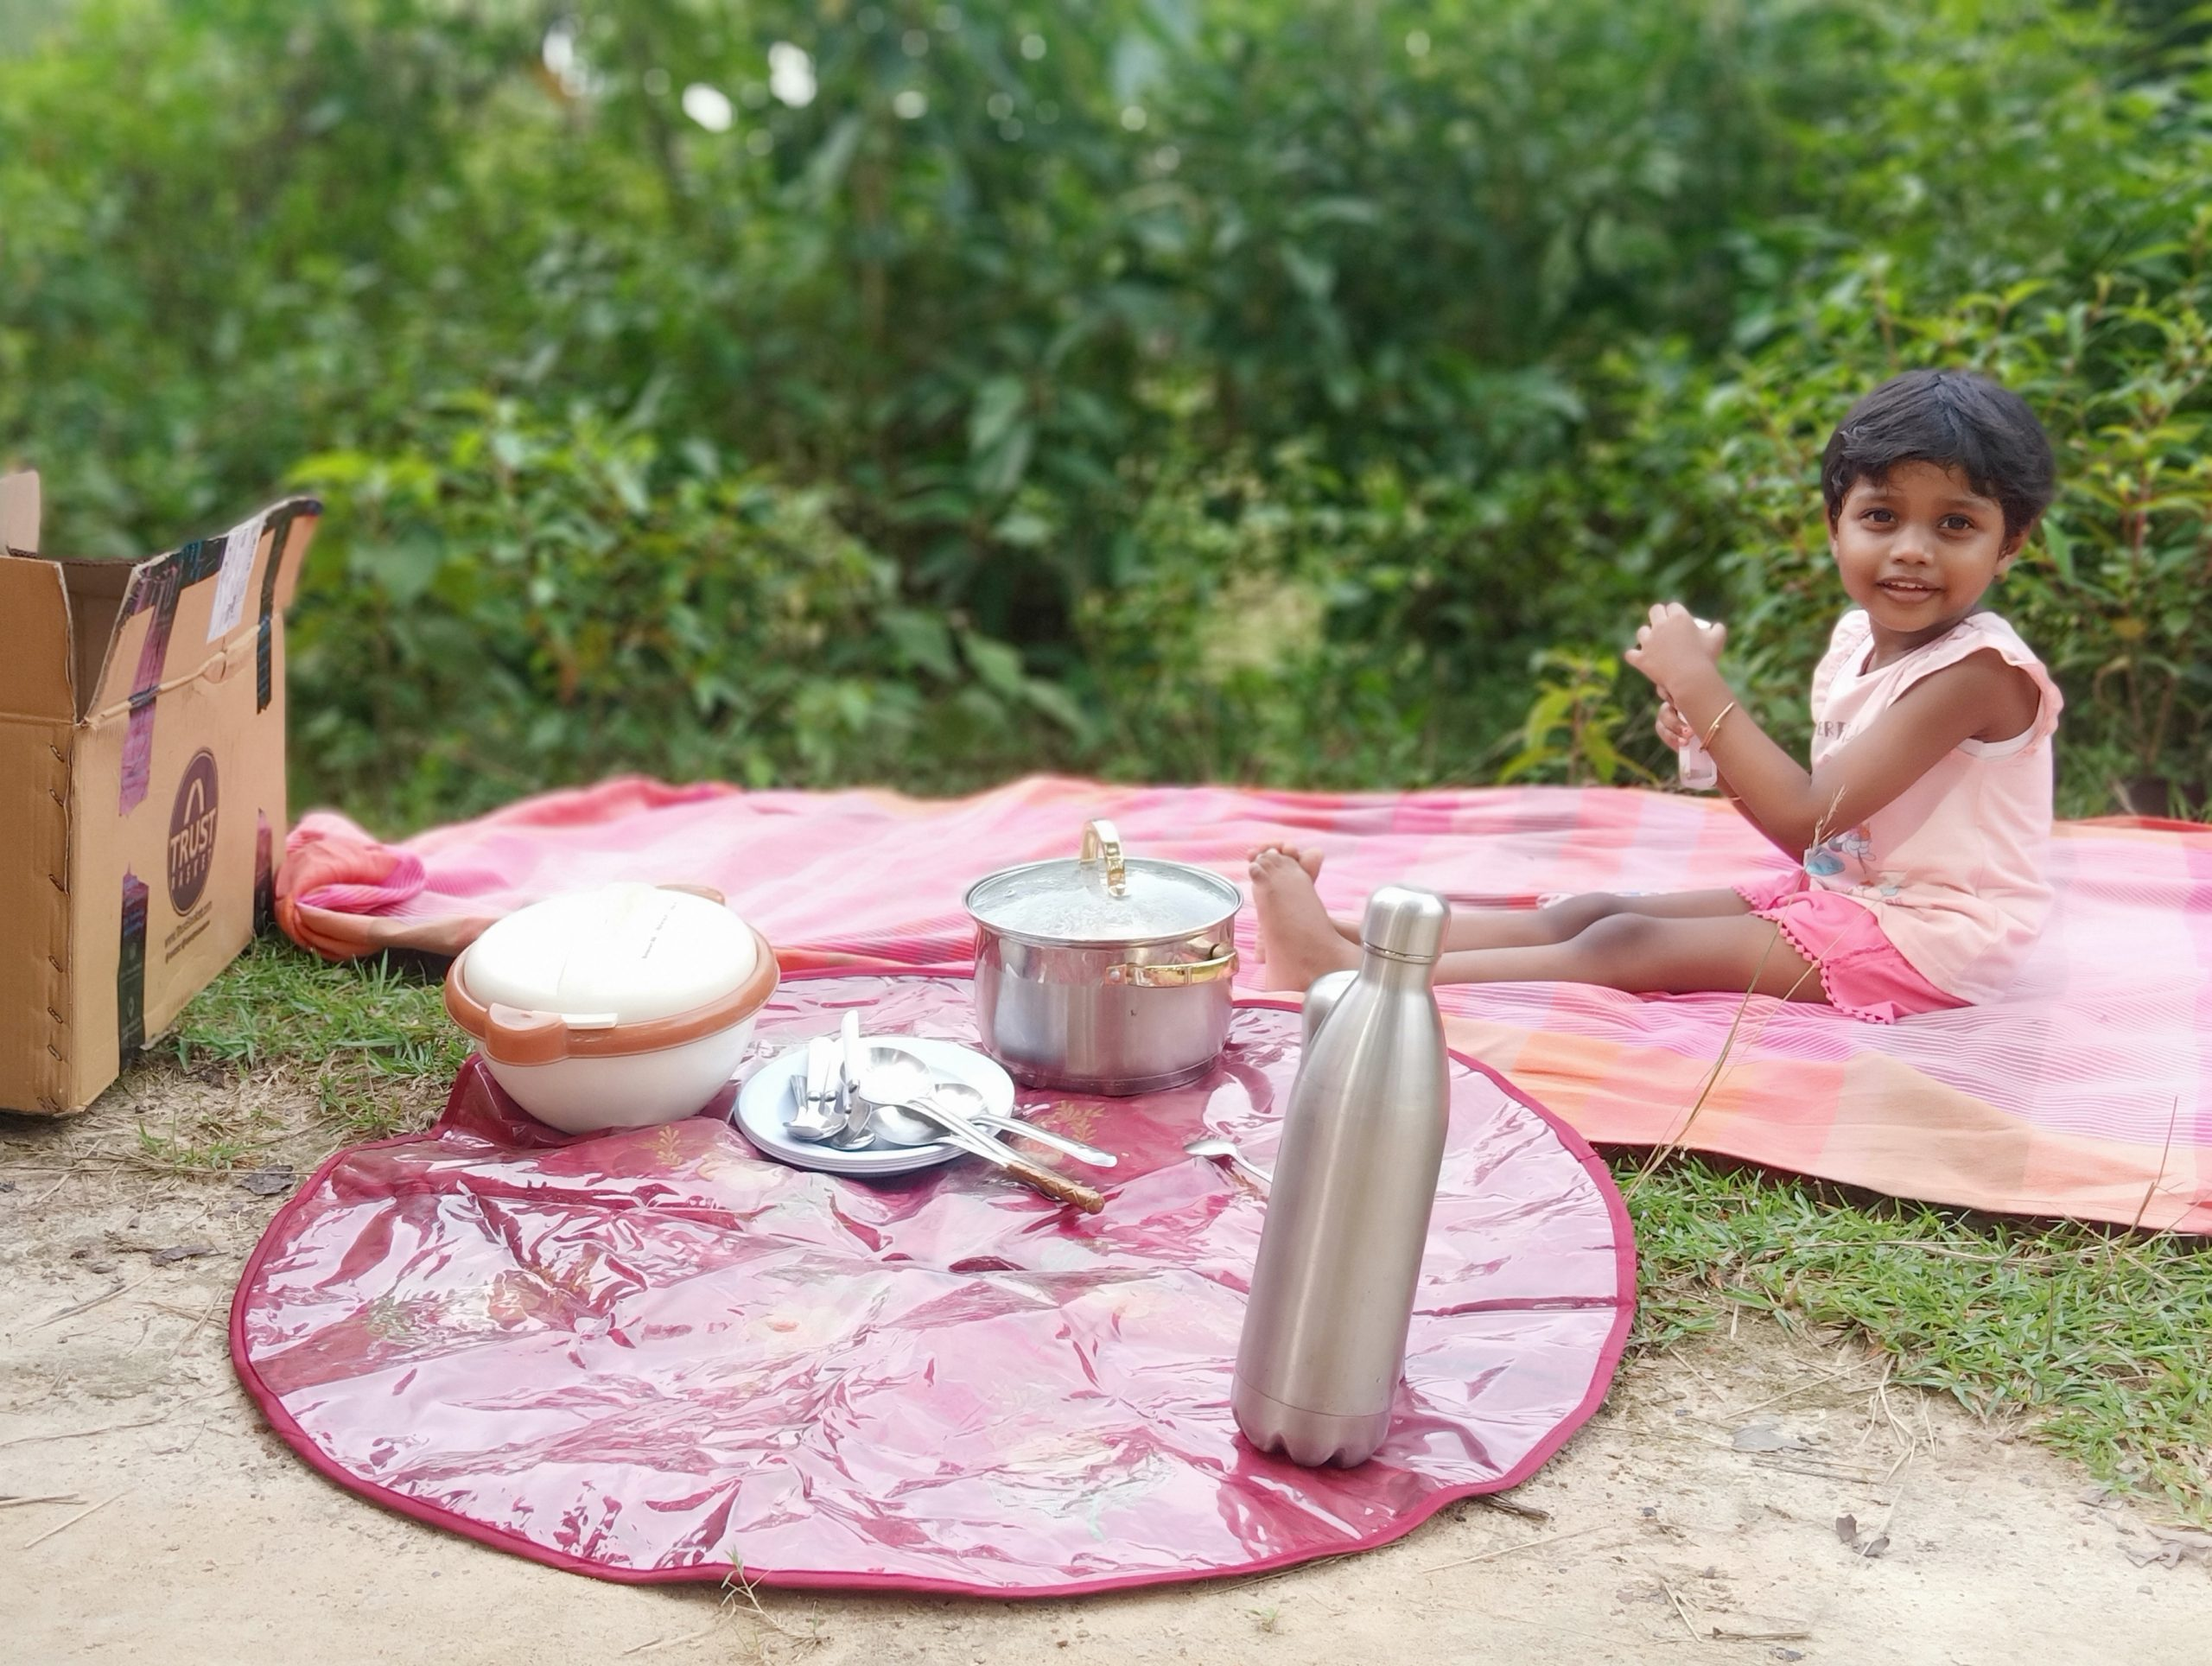 A kid during picnic